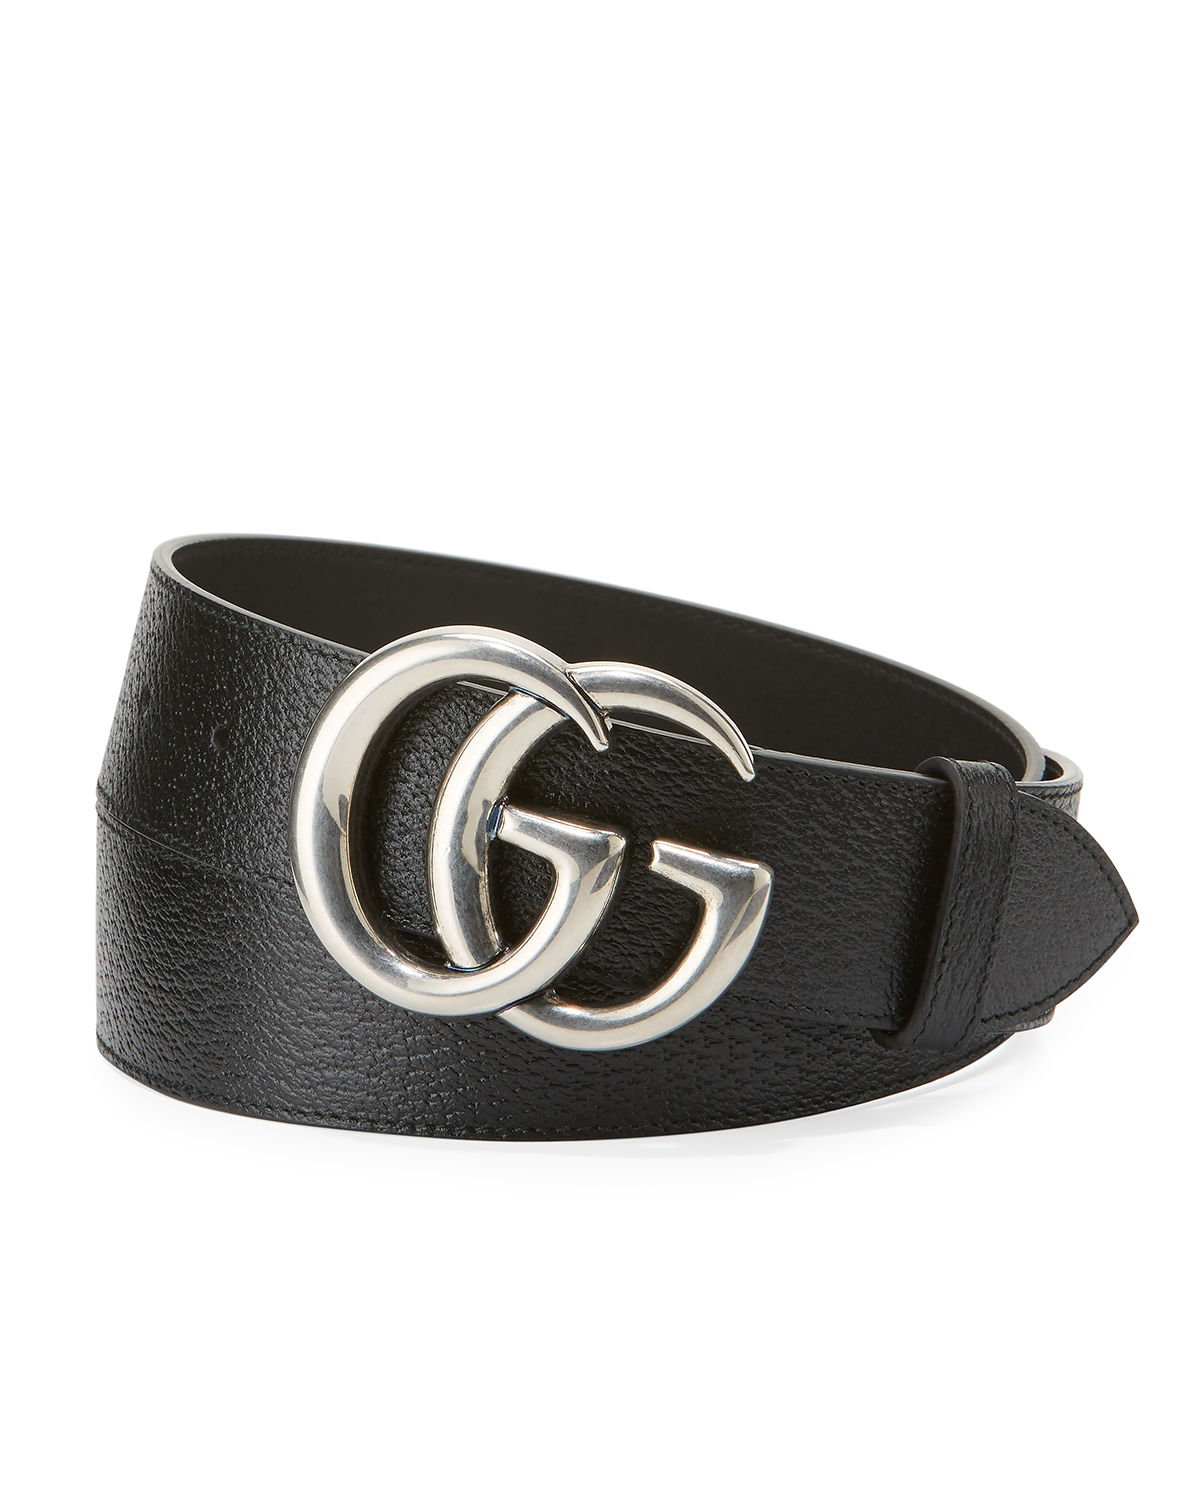 0e16adb876423 Gucci Men s Leather Belt with Silvertone Double-G Buckle